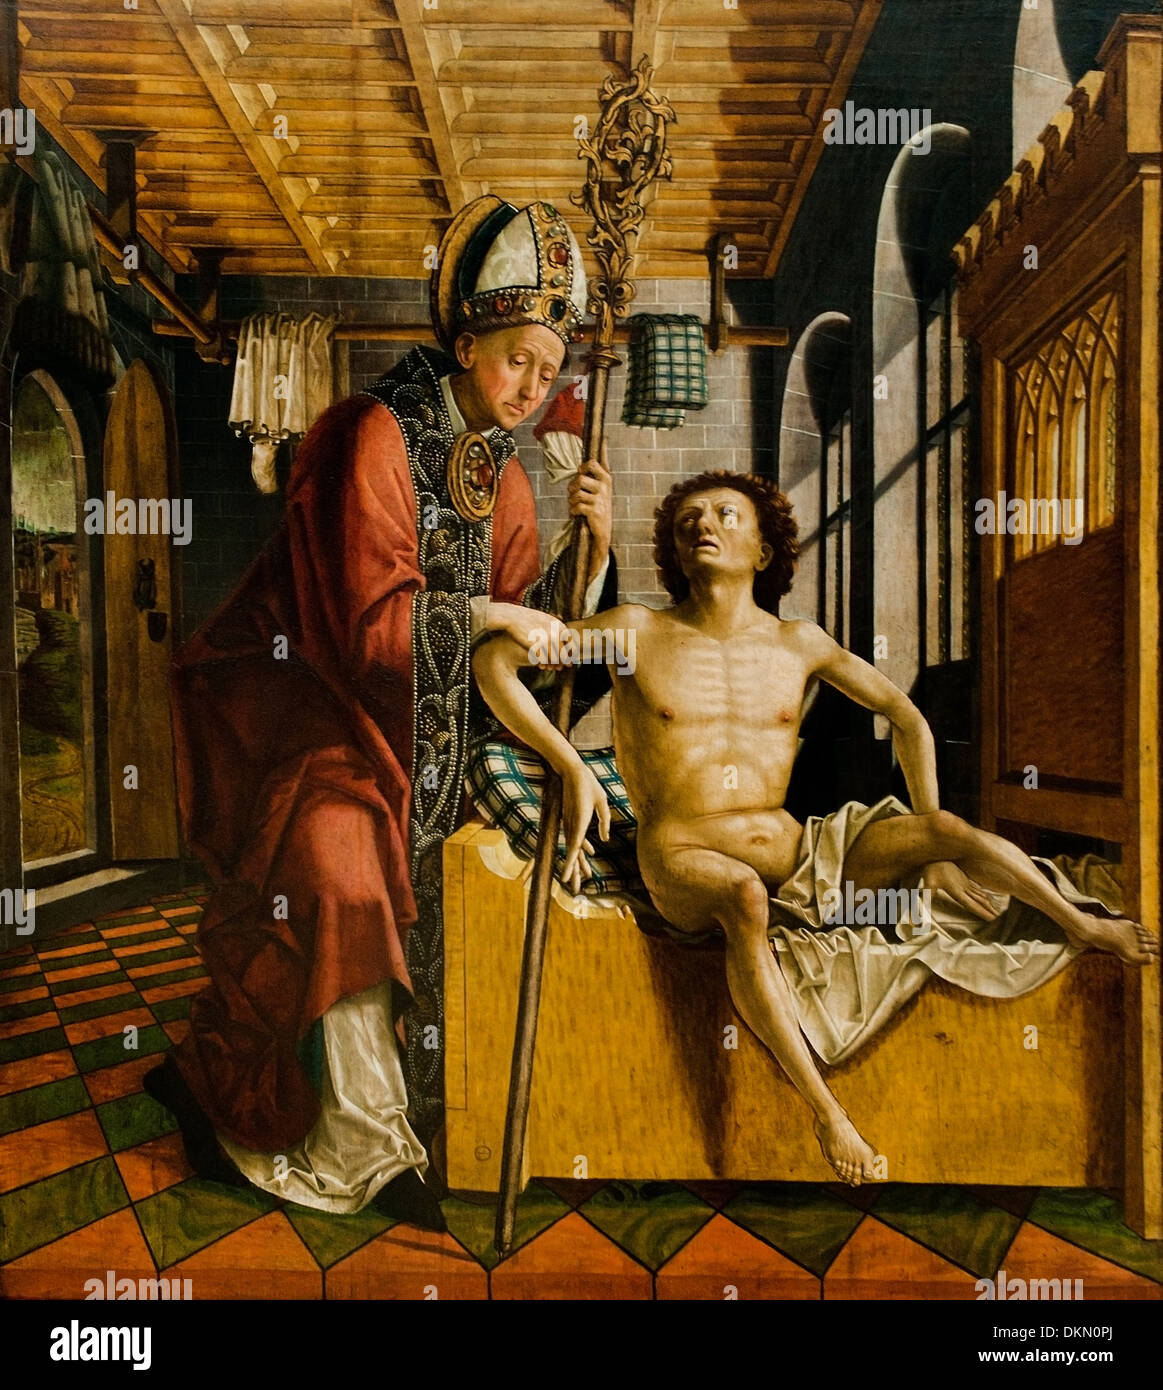 Die Heilung des propstes durch den HL Augustinus - The healing of the Provost by the St  Augustinus 1435 - 1498 Michael Pacher - Stock Image